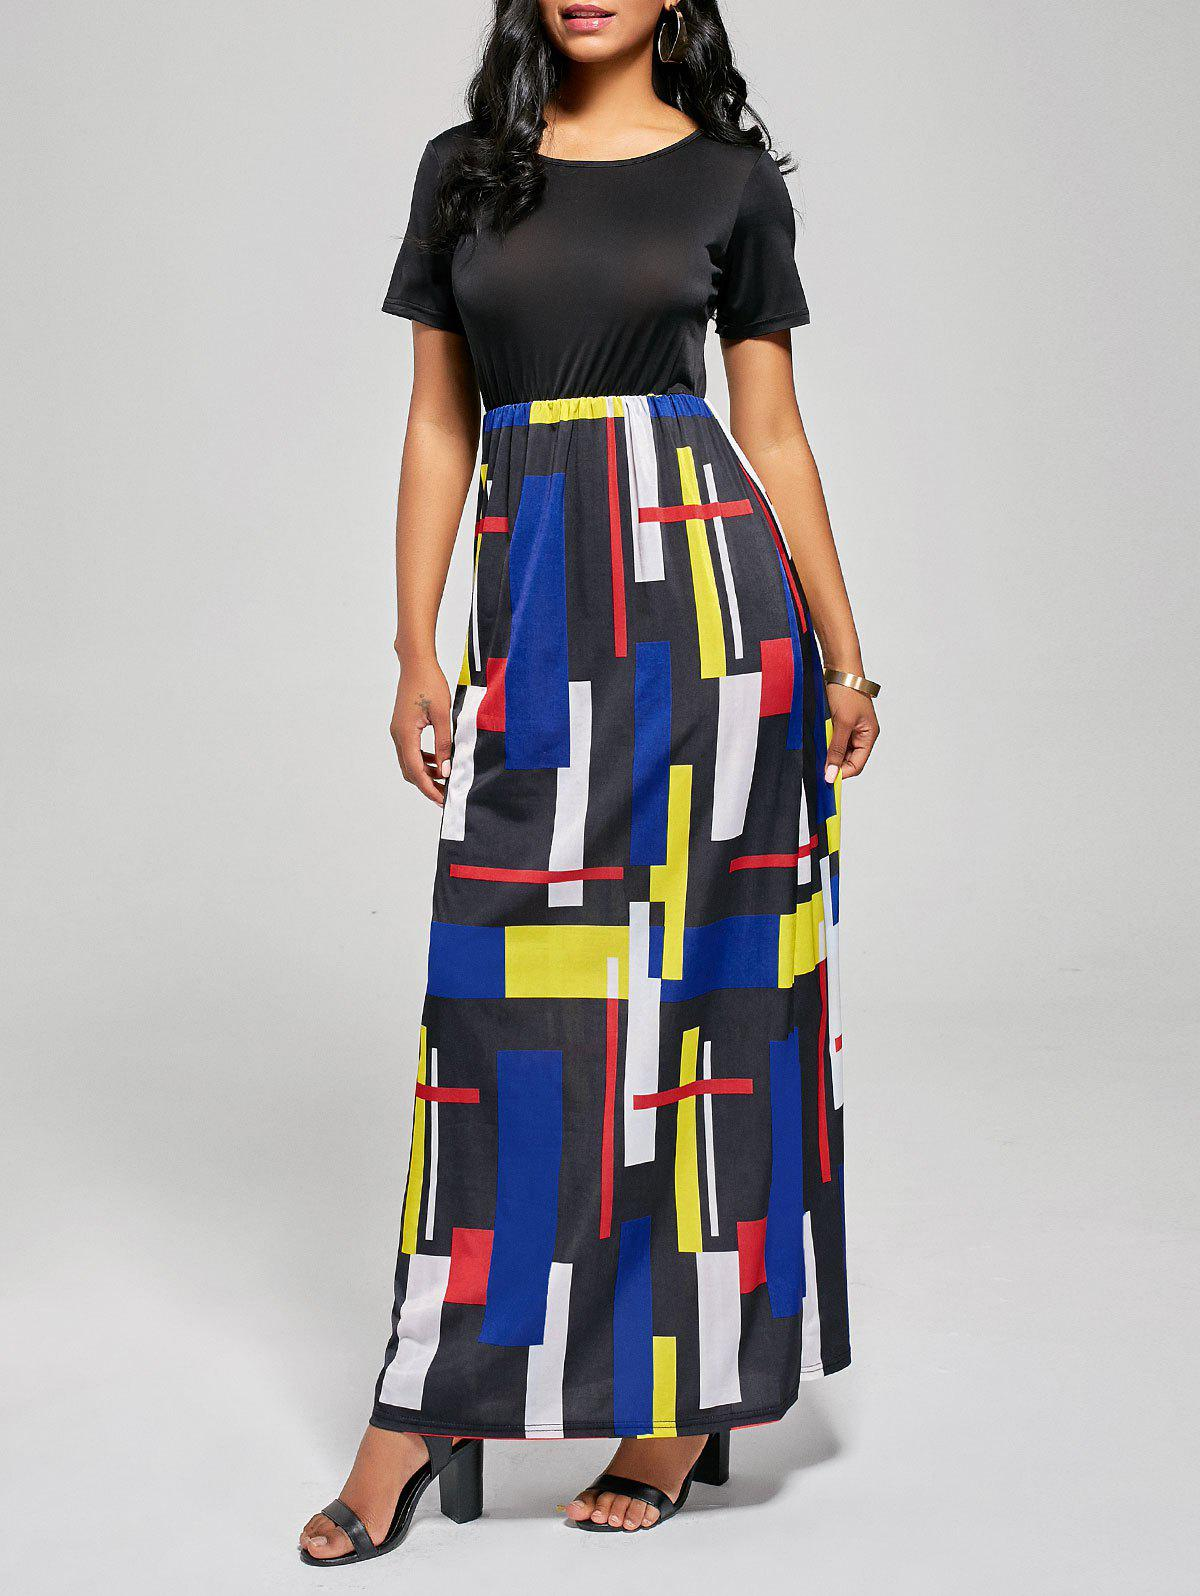 Geometric Print A Line Floor Length Dress - BLACK/RED M